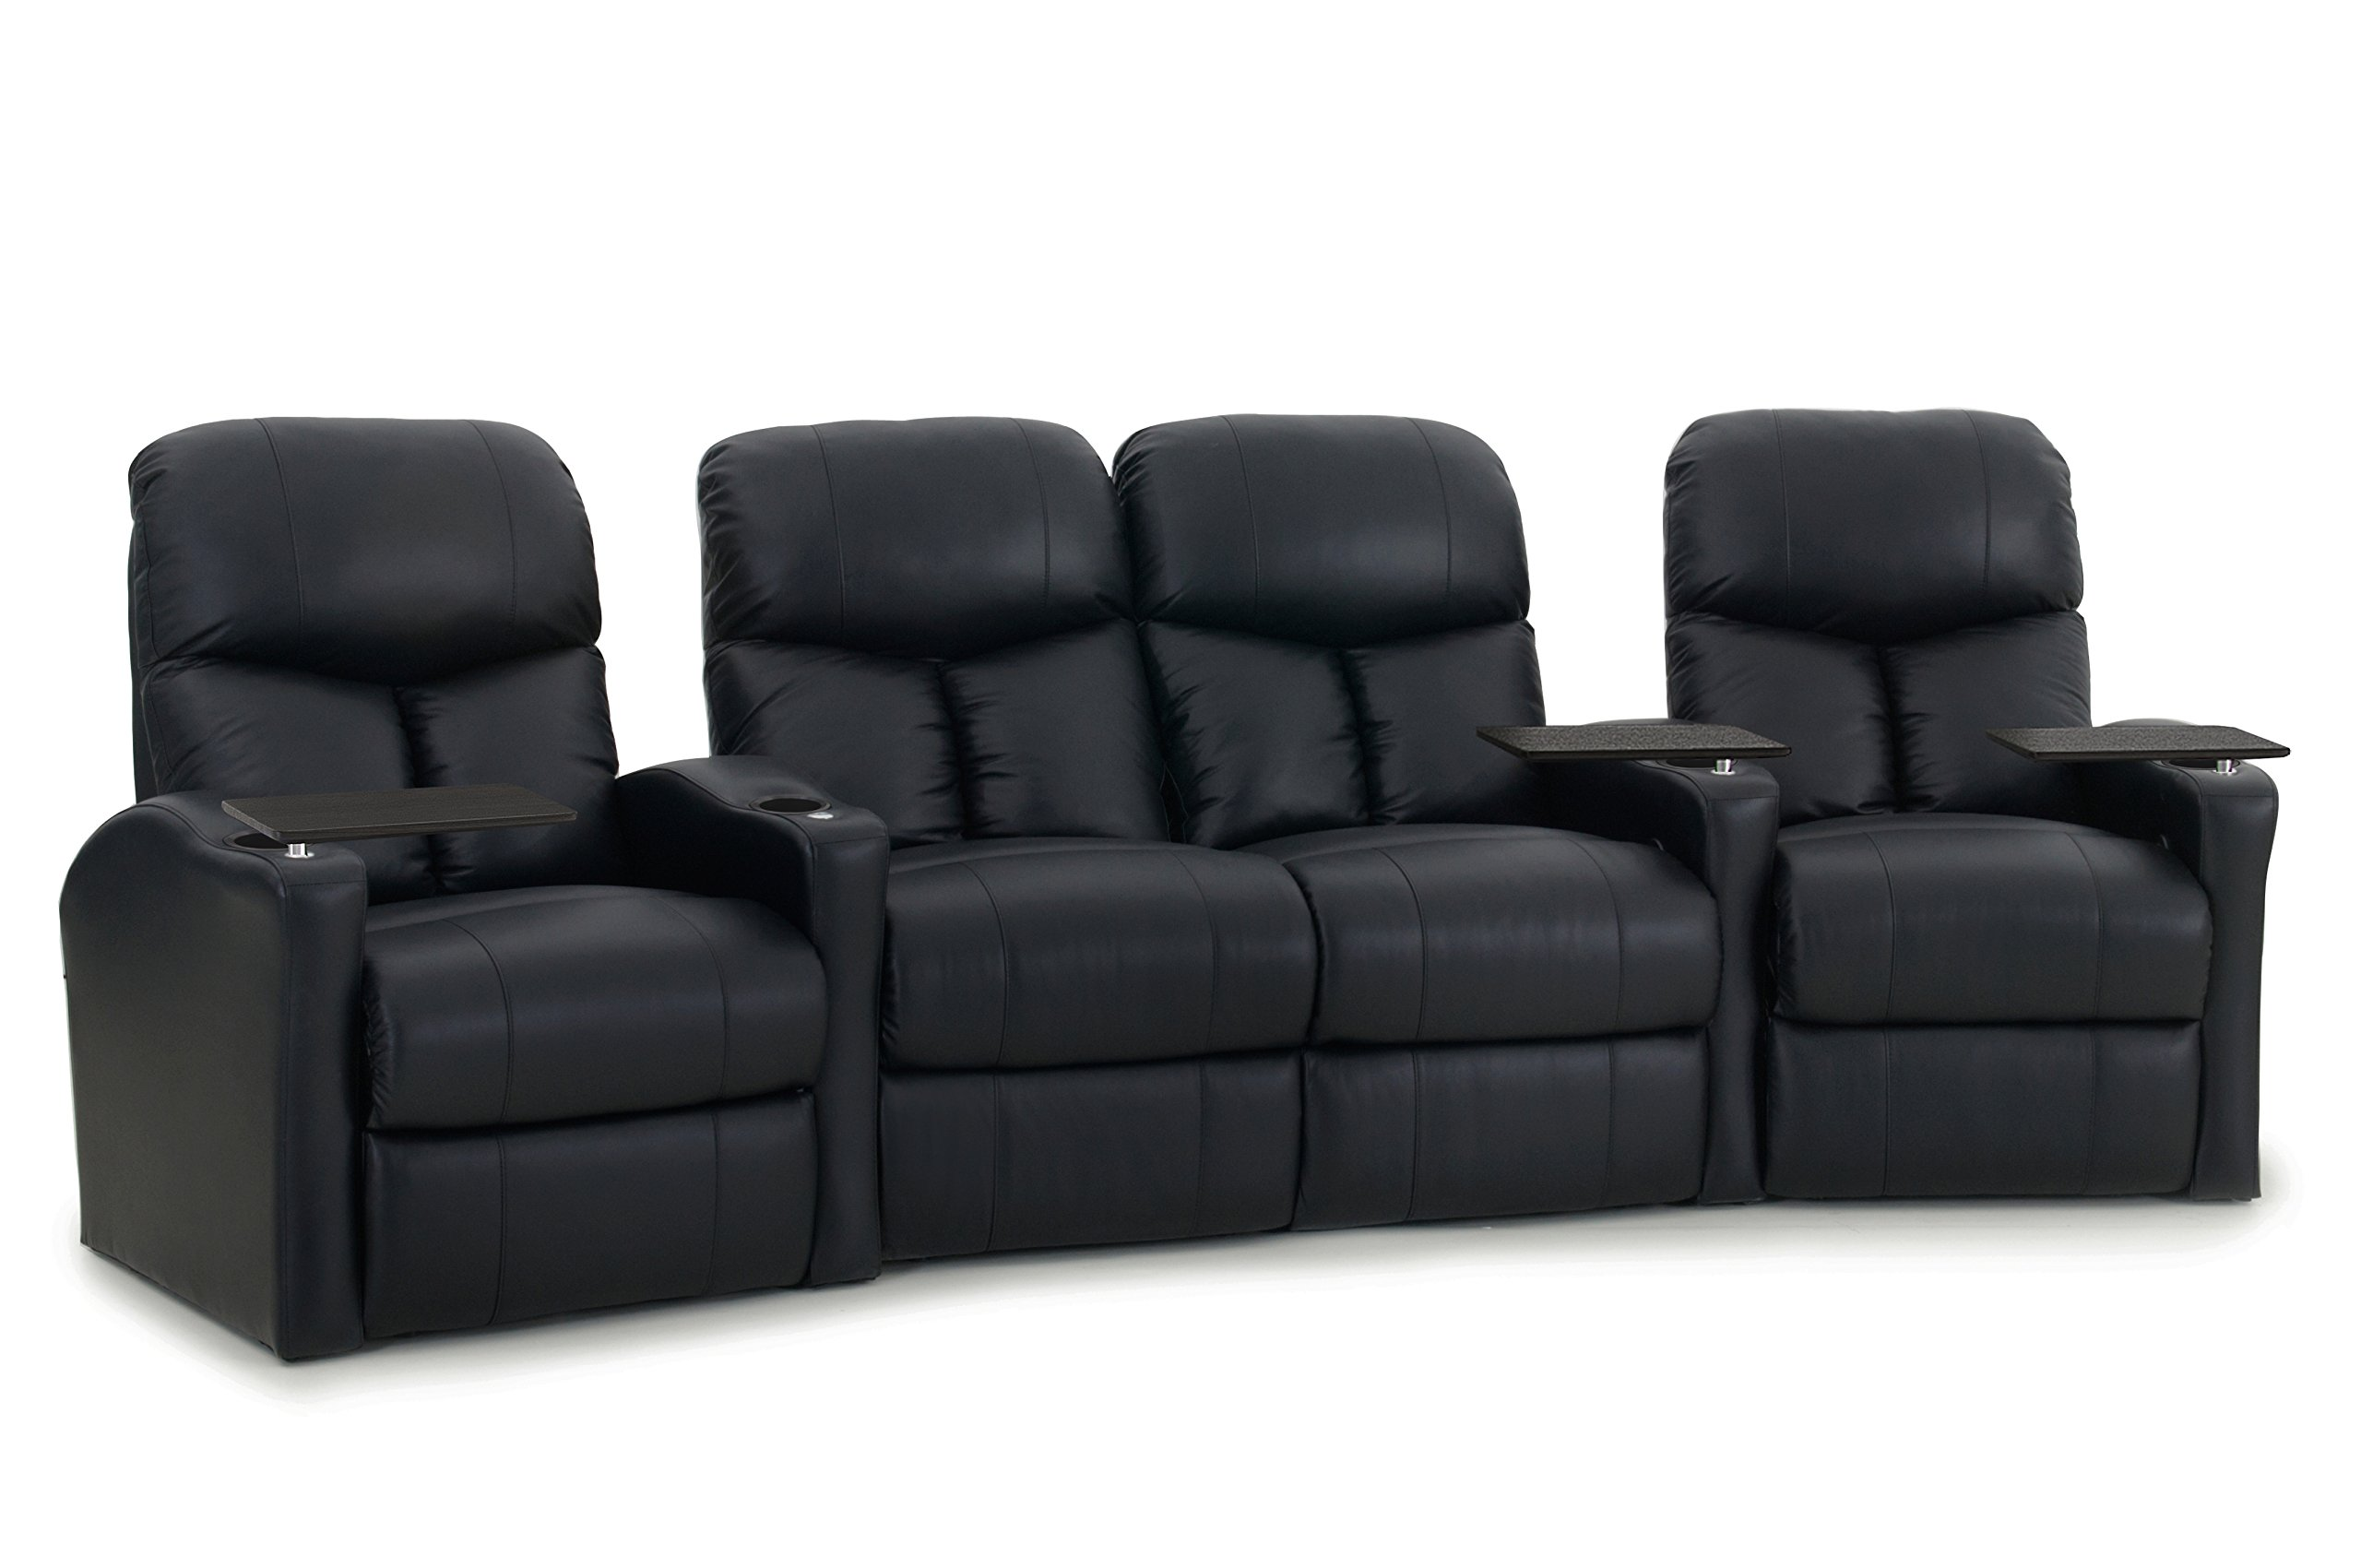 Octane Seating Octane Bolt XS400 Leather Home Theater Recliner Set (Row of 4) by Octane Seating